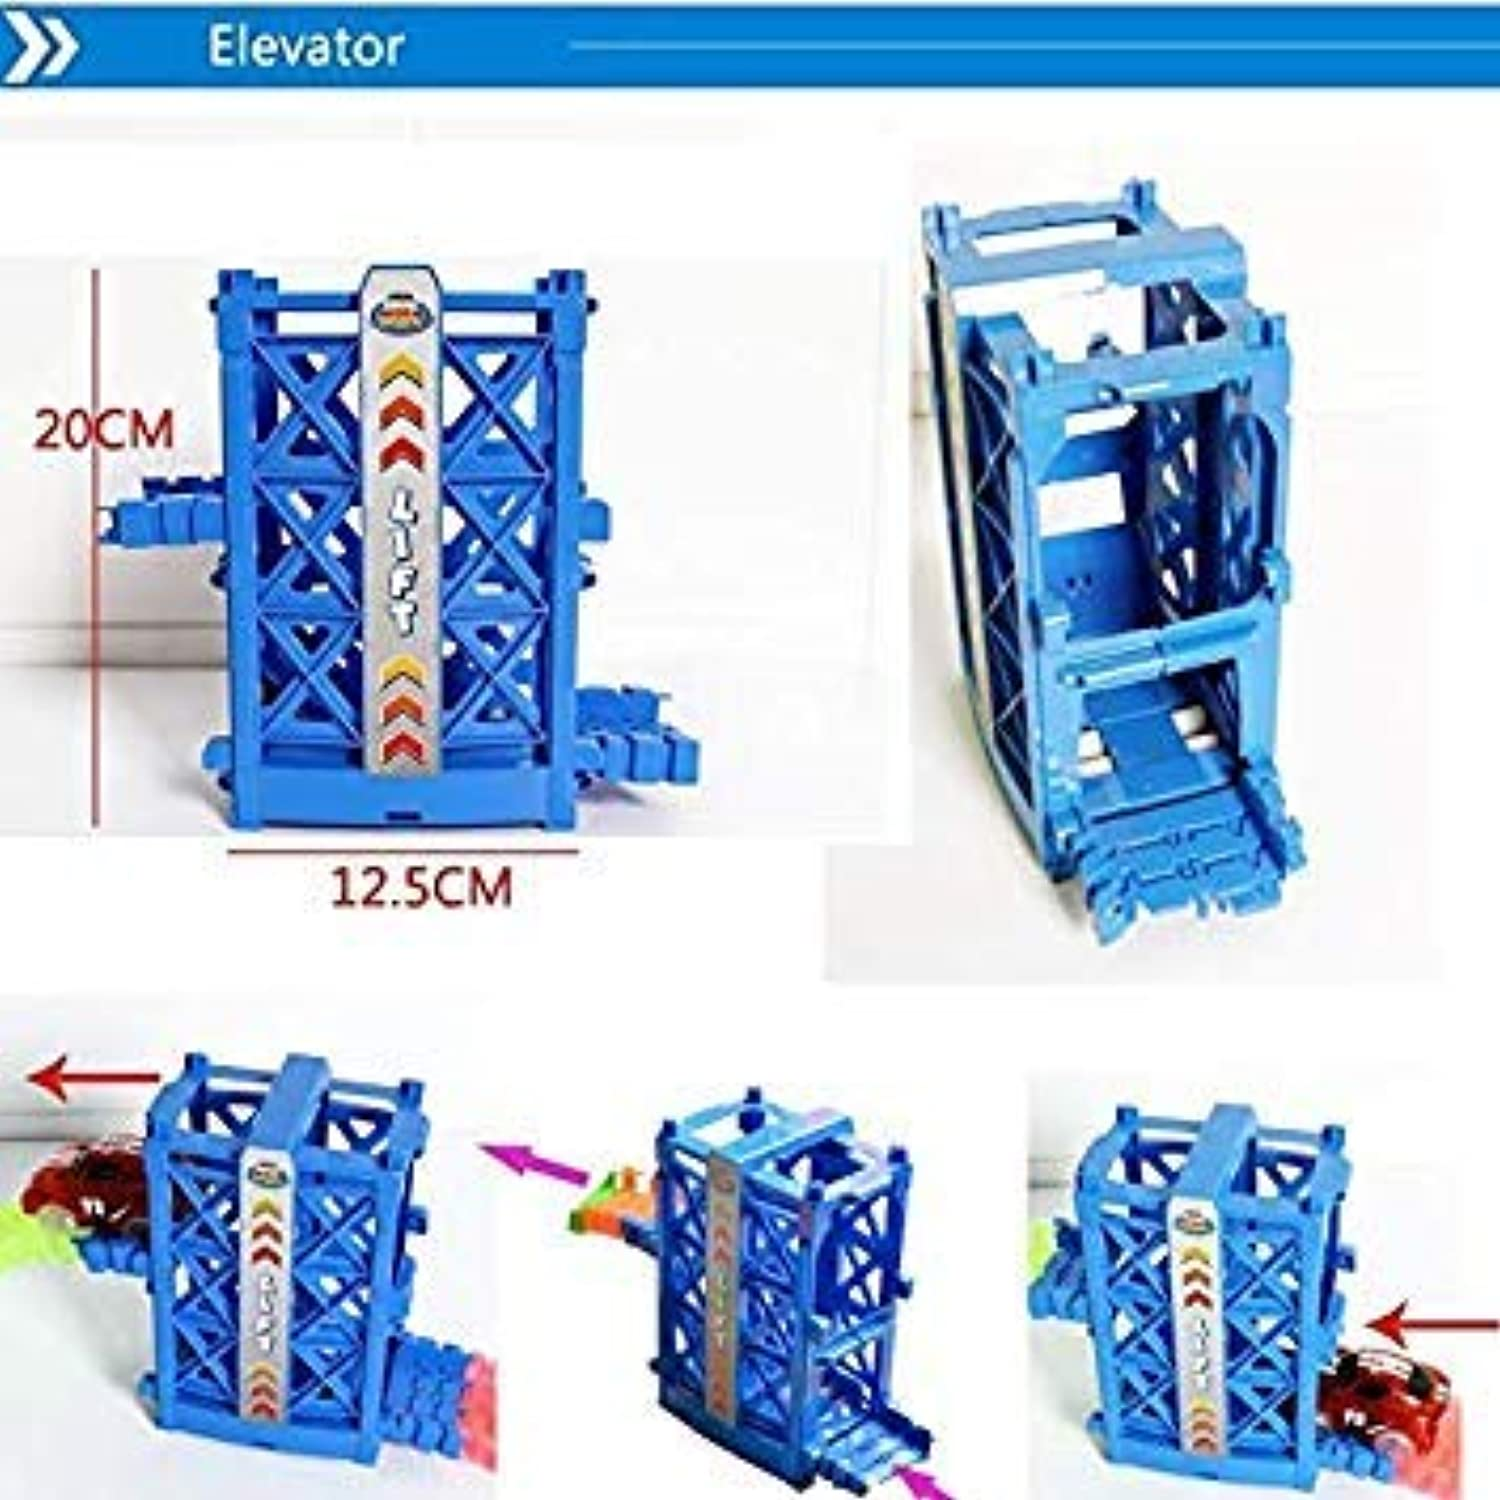 Create A Road Toy Magical Flexible Race Car Track Set Accessory and LED Race Cars Glow in The Dark Racetrack Educational playset 1 Set Elevator